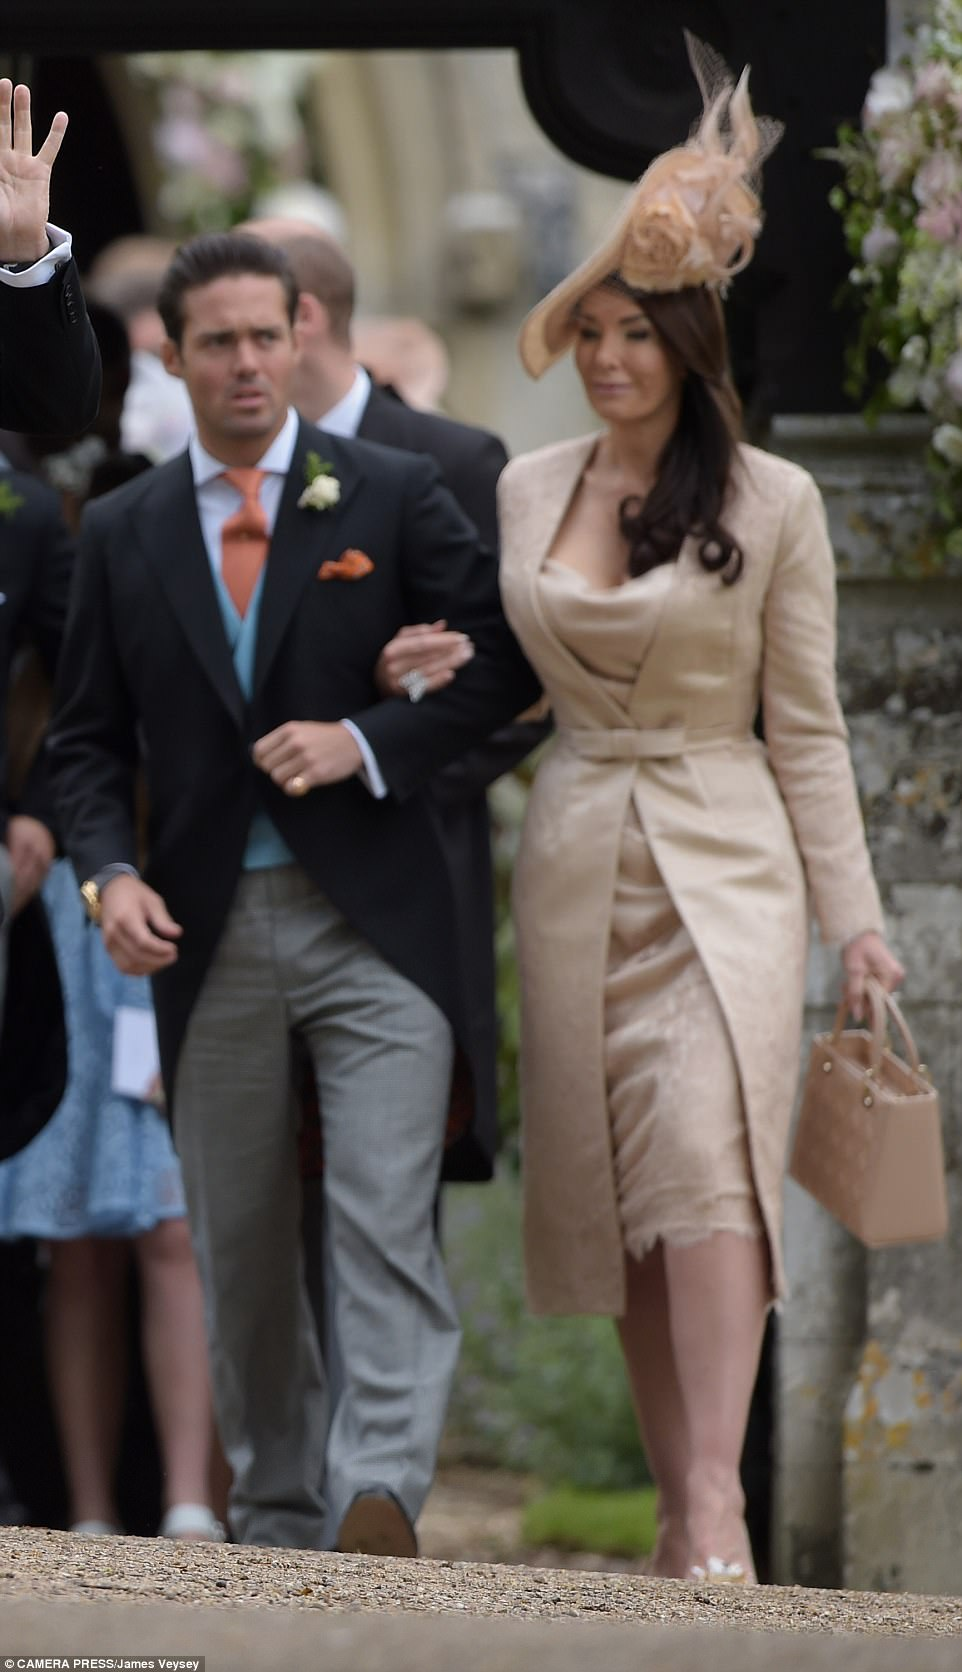 Guests arrived at Pippa Middleton Wedding